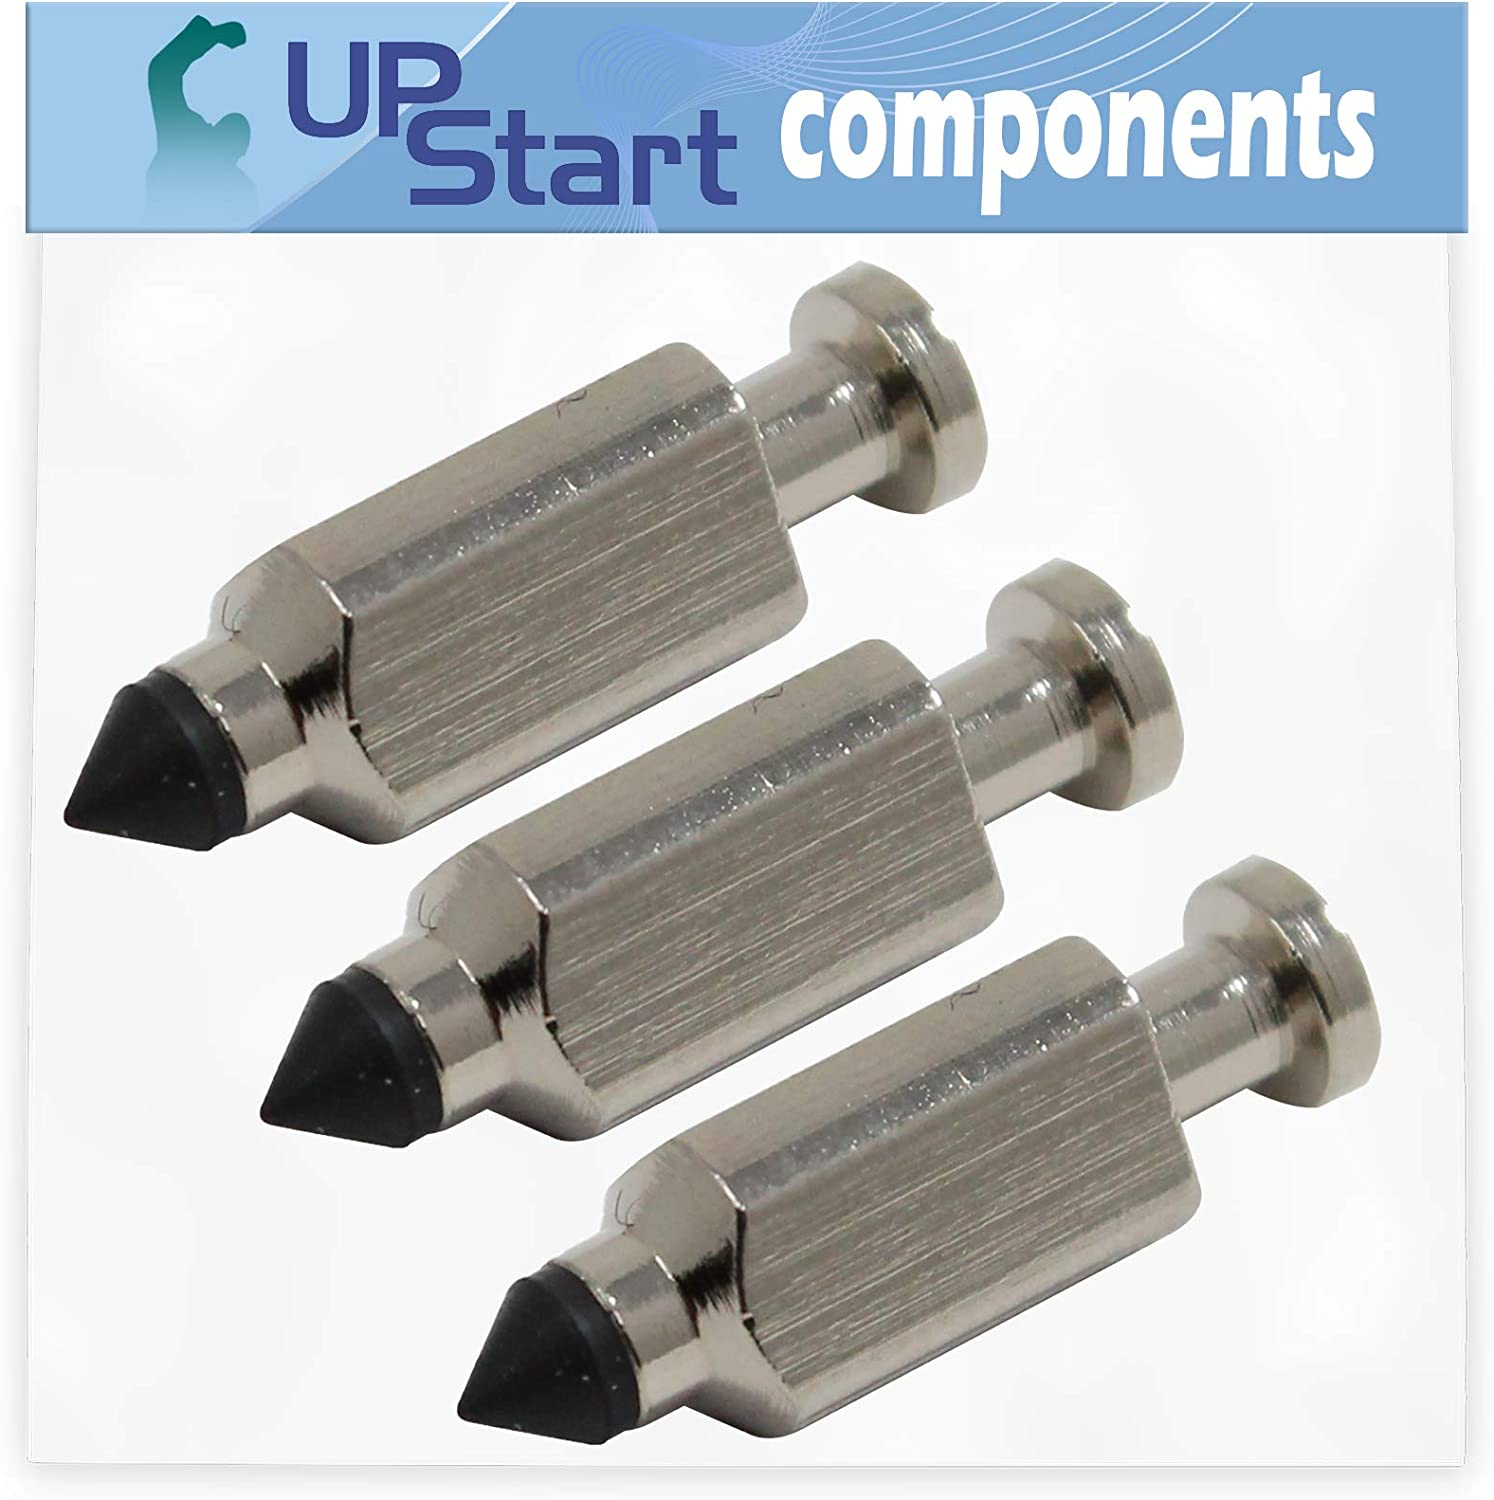 55AC5GMR050 WAM Wide Area Mower Compatible with 231855 Carburetor Float Valve UpStart Components 3-Pack 231855S Float Needle Valve Replacement for Cub Cadet G1236